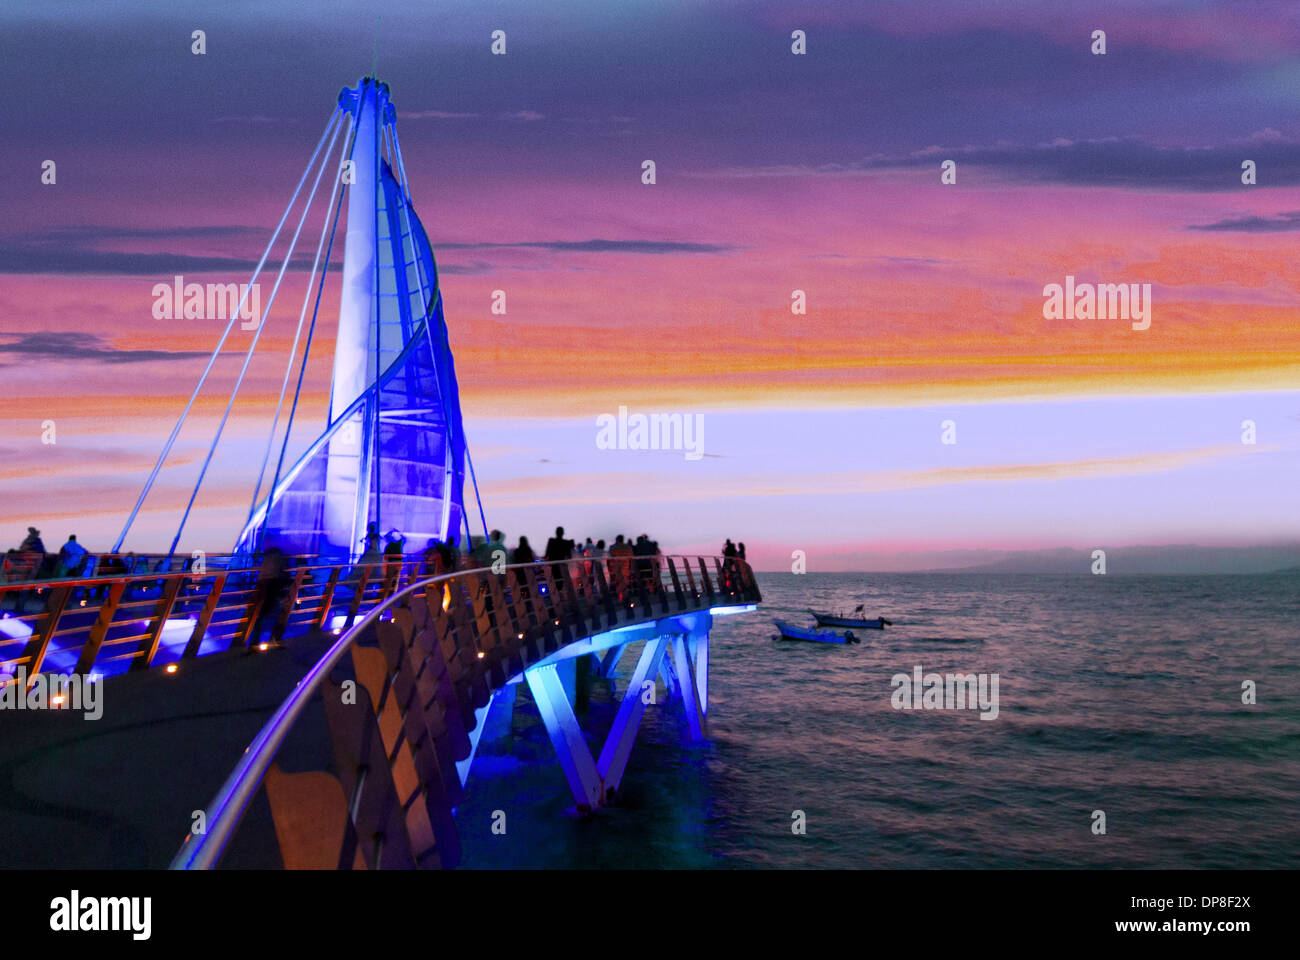 Sail sculpture illuminated at sunset, Puerto Vallarta, Jalisco, Mexico - Stock Image